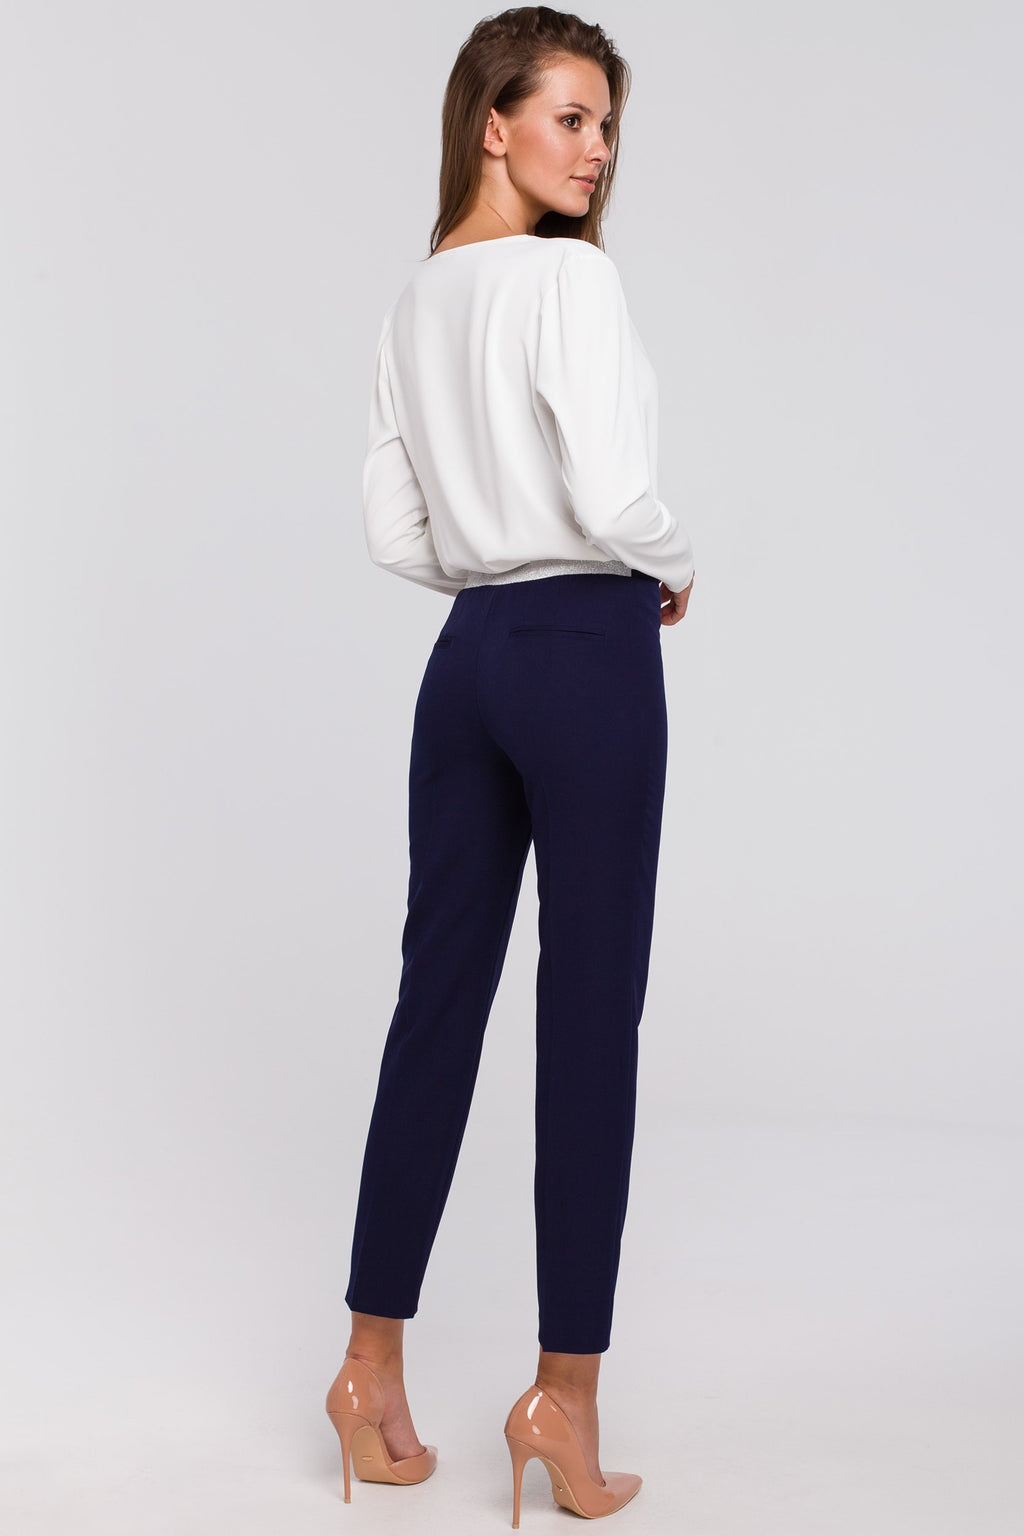 Navy Blue Capri Trousers With Silver Elastic Waist Band - So Chic Boutique